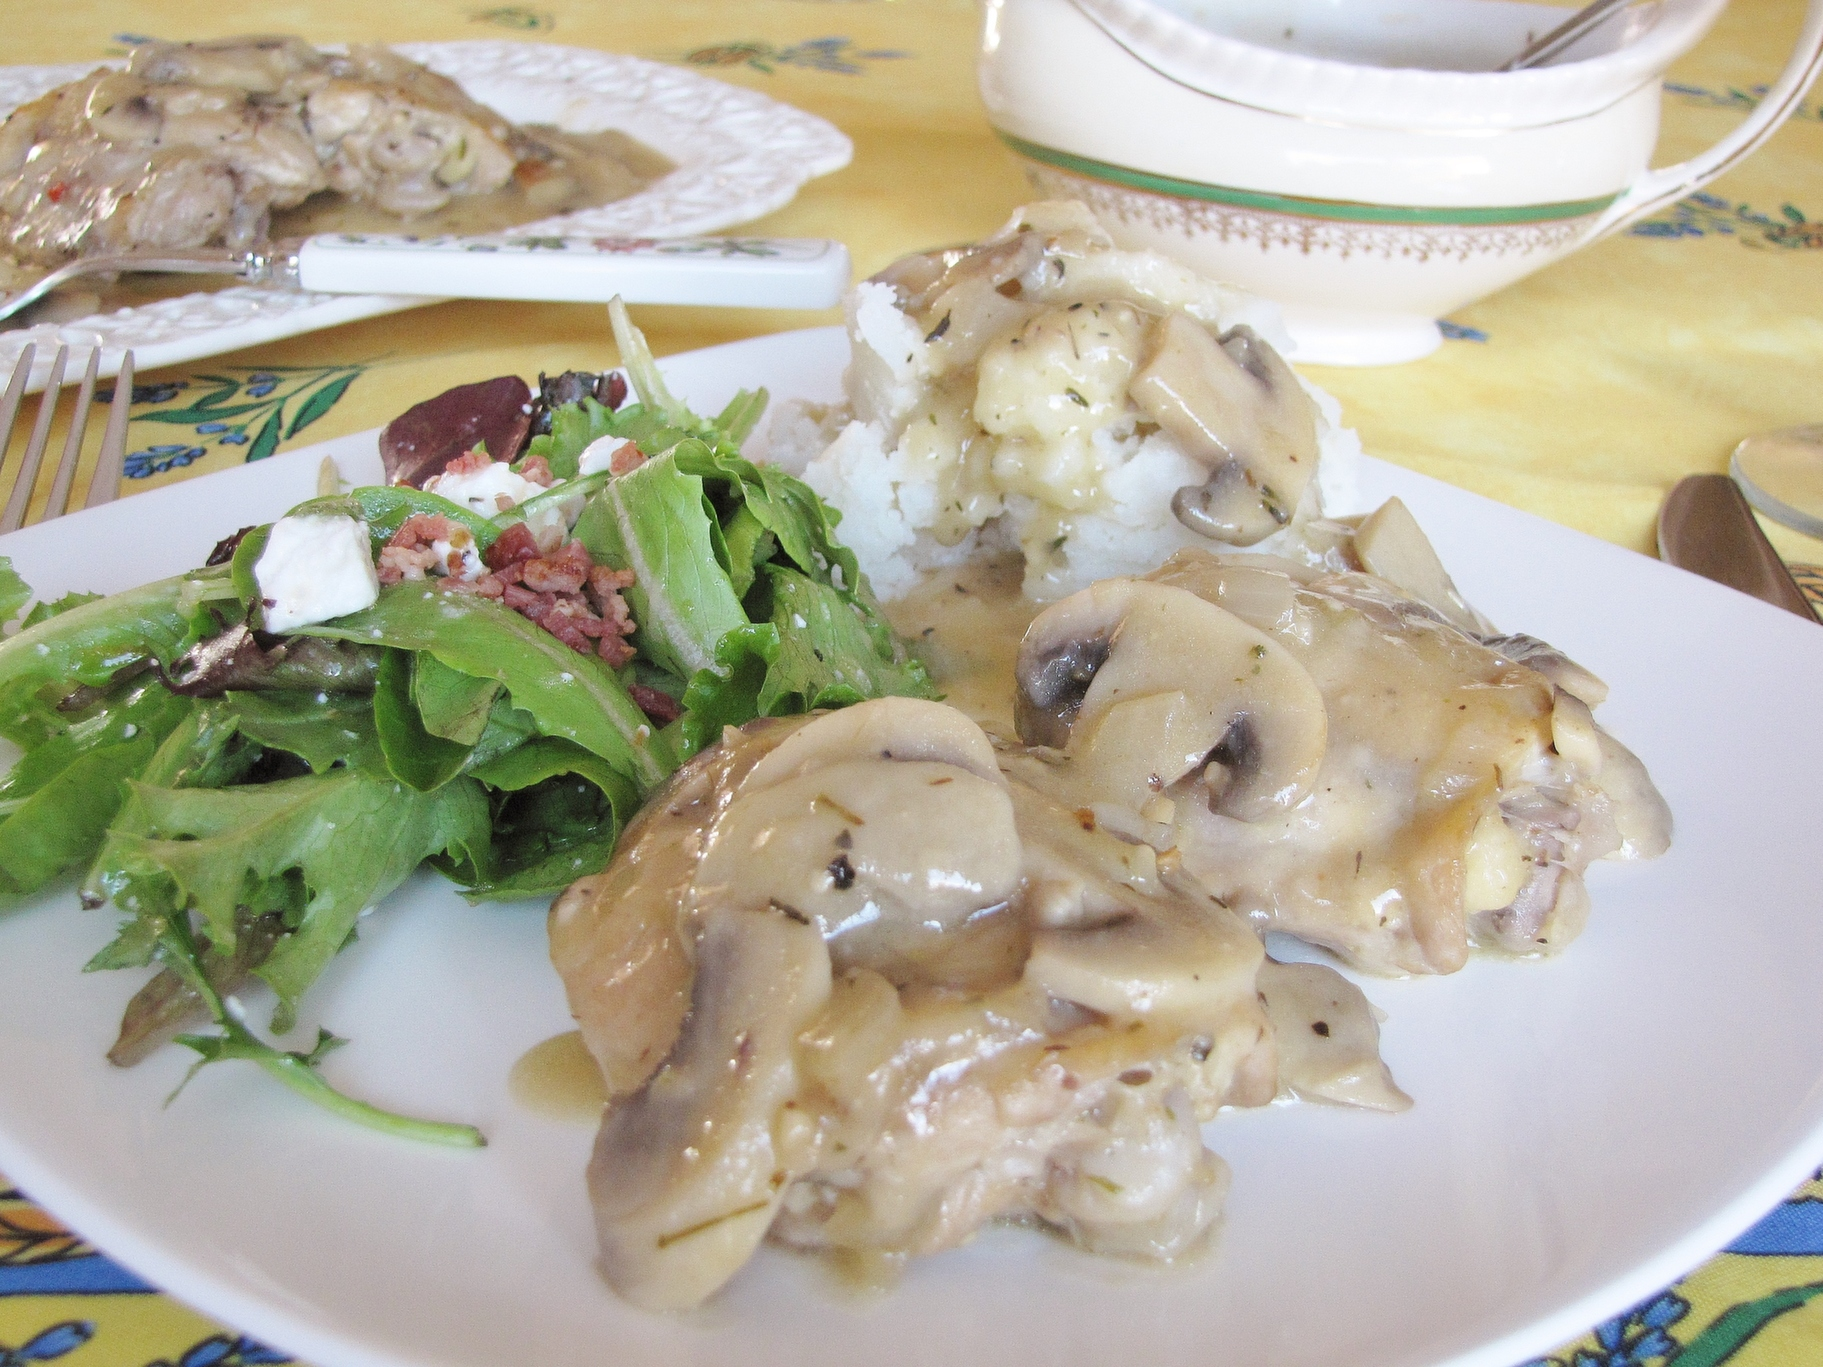 ... crust artichoke chicken roulades with mushroom kamut mushroom